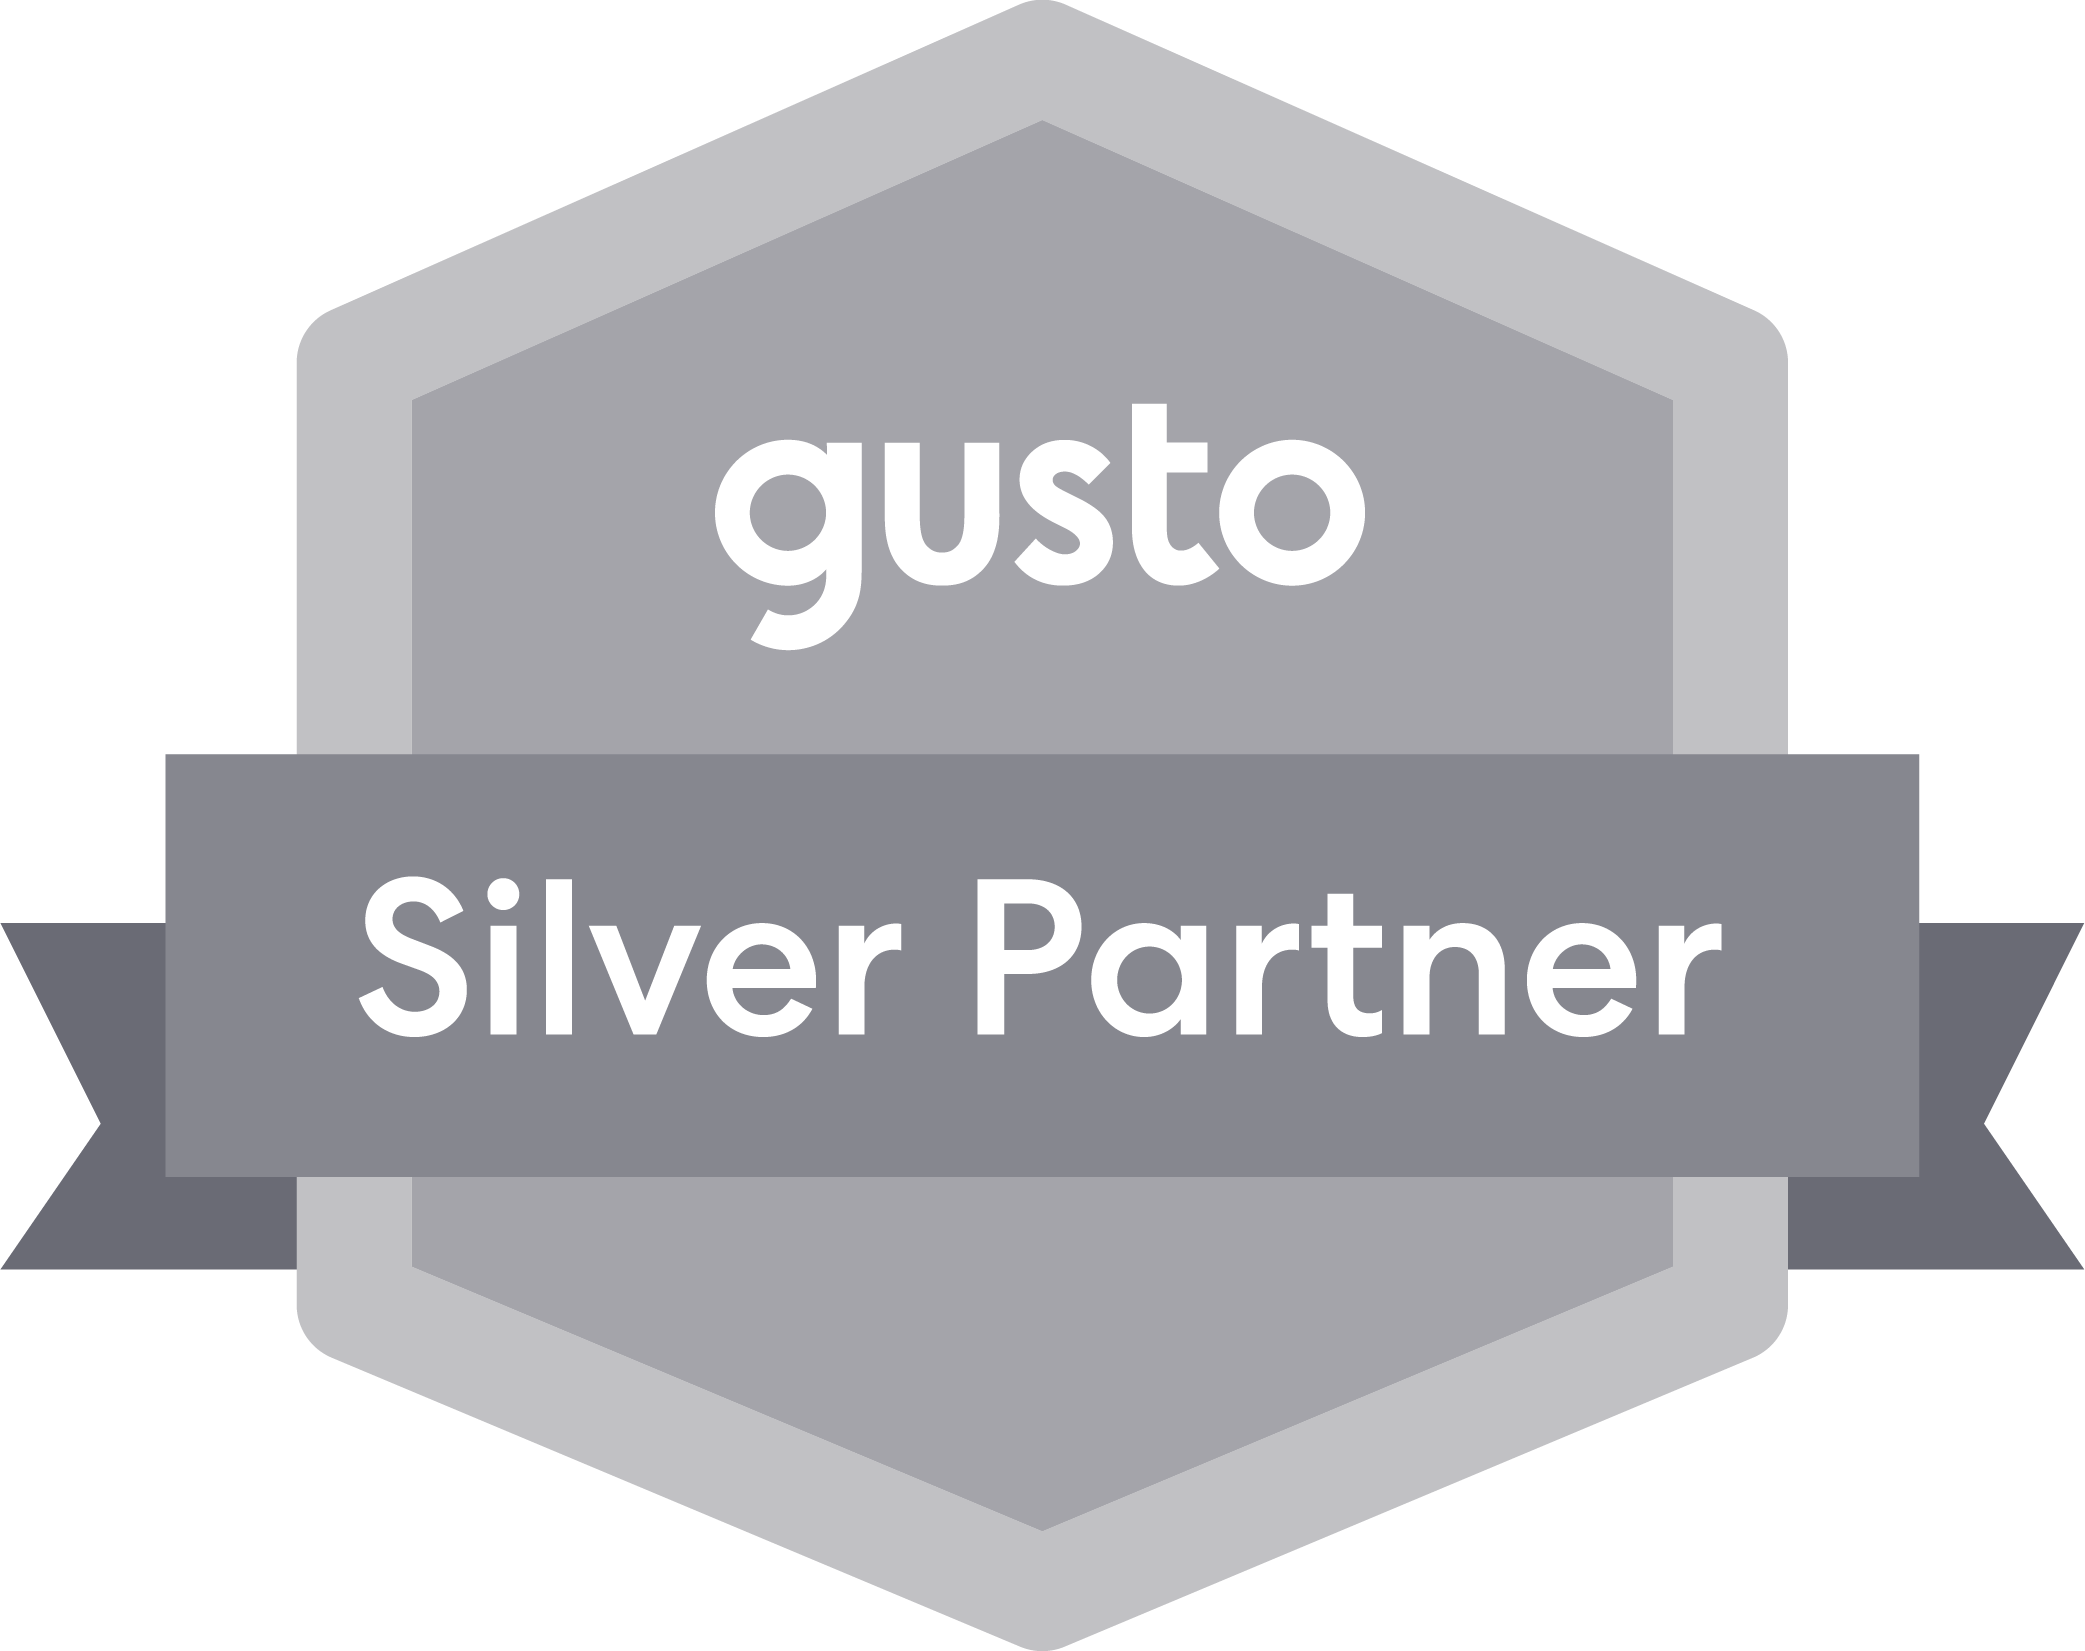 GP CPA Gusto Silver Partner Badge » Certified Public Accountant using Xero, Avalara and Gusto to make your payroll and taxes easier, serving in North Carolina and South Carolina